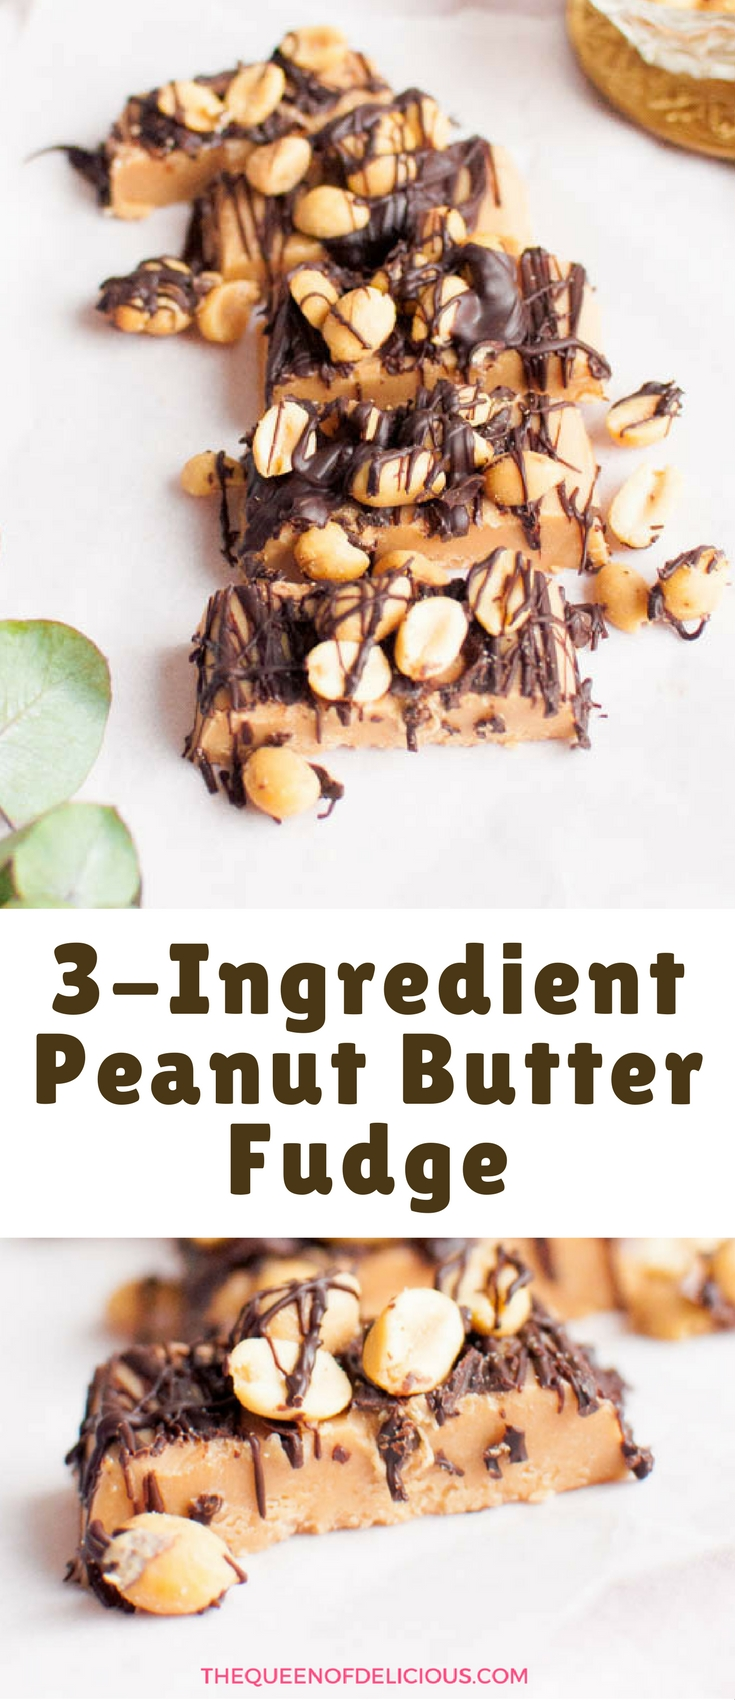 Love this easy and healthy peanut butter fudge! It's made with only three ingredients. Take the fudge to the next level by adding melted chocolate and salted peanuts.